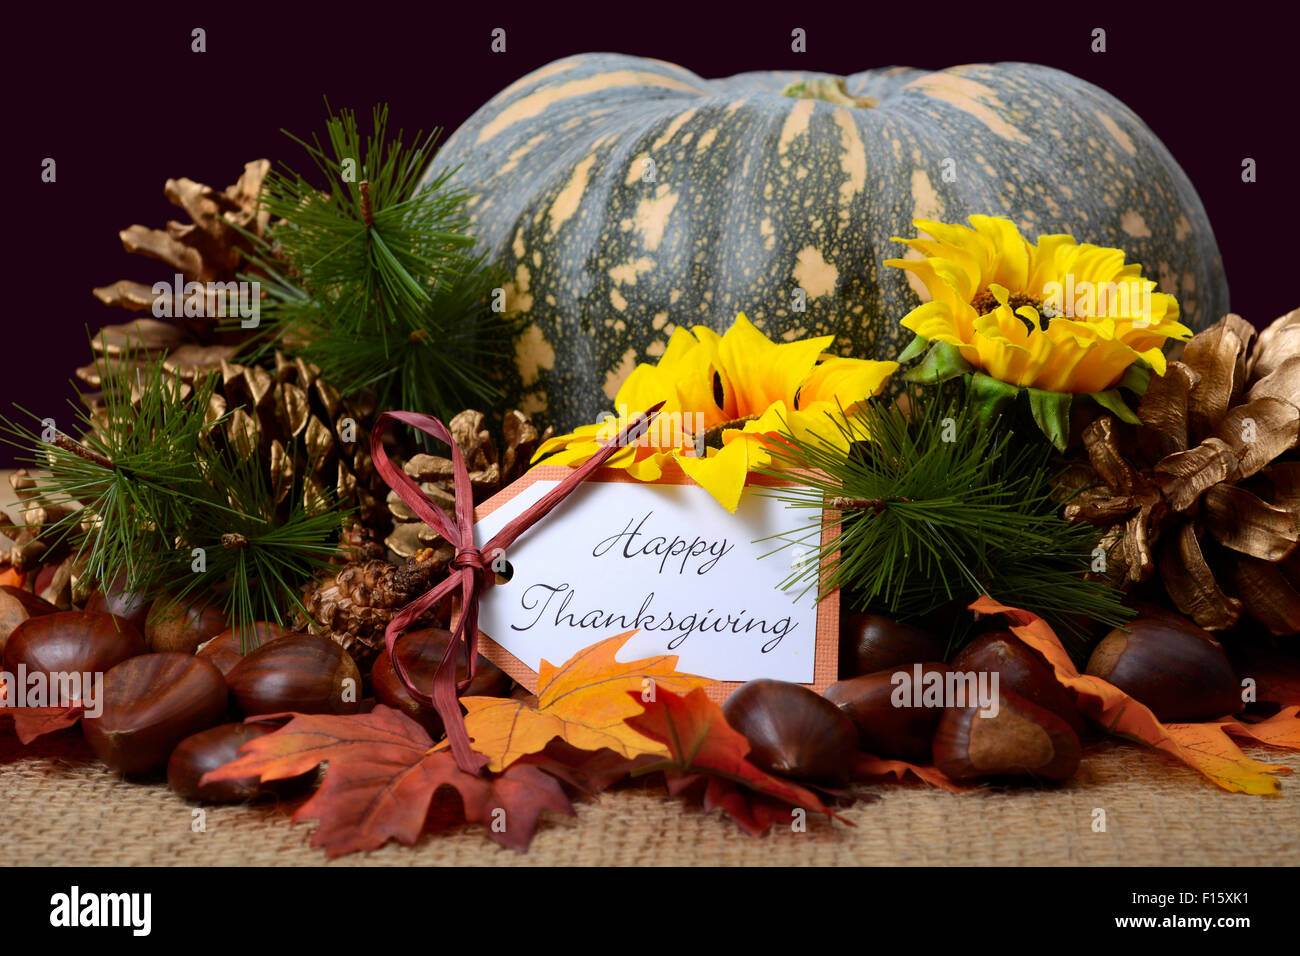 Happy Thanksgiving Pumpkin In Rustic Setting On Burlap Covered Table With Greeting Message